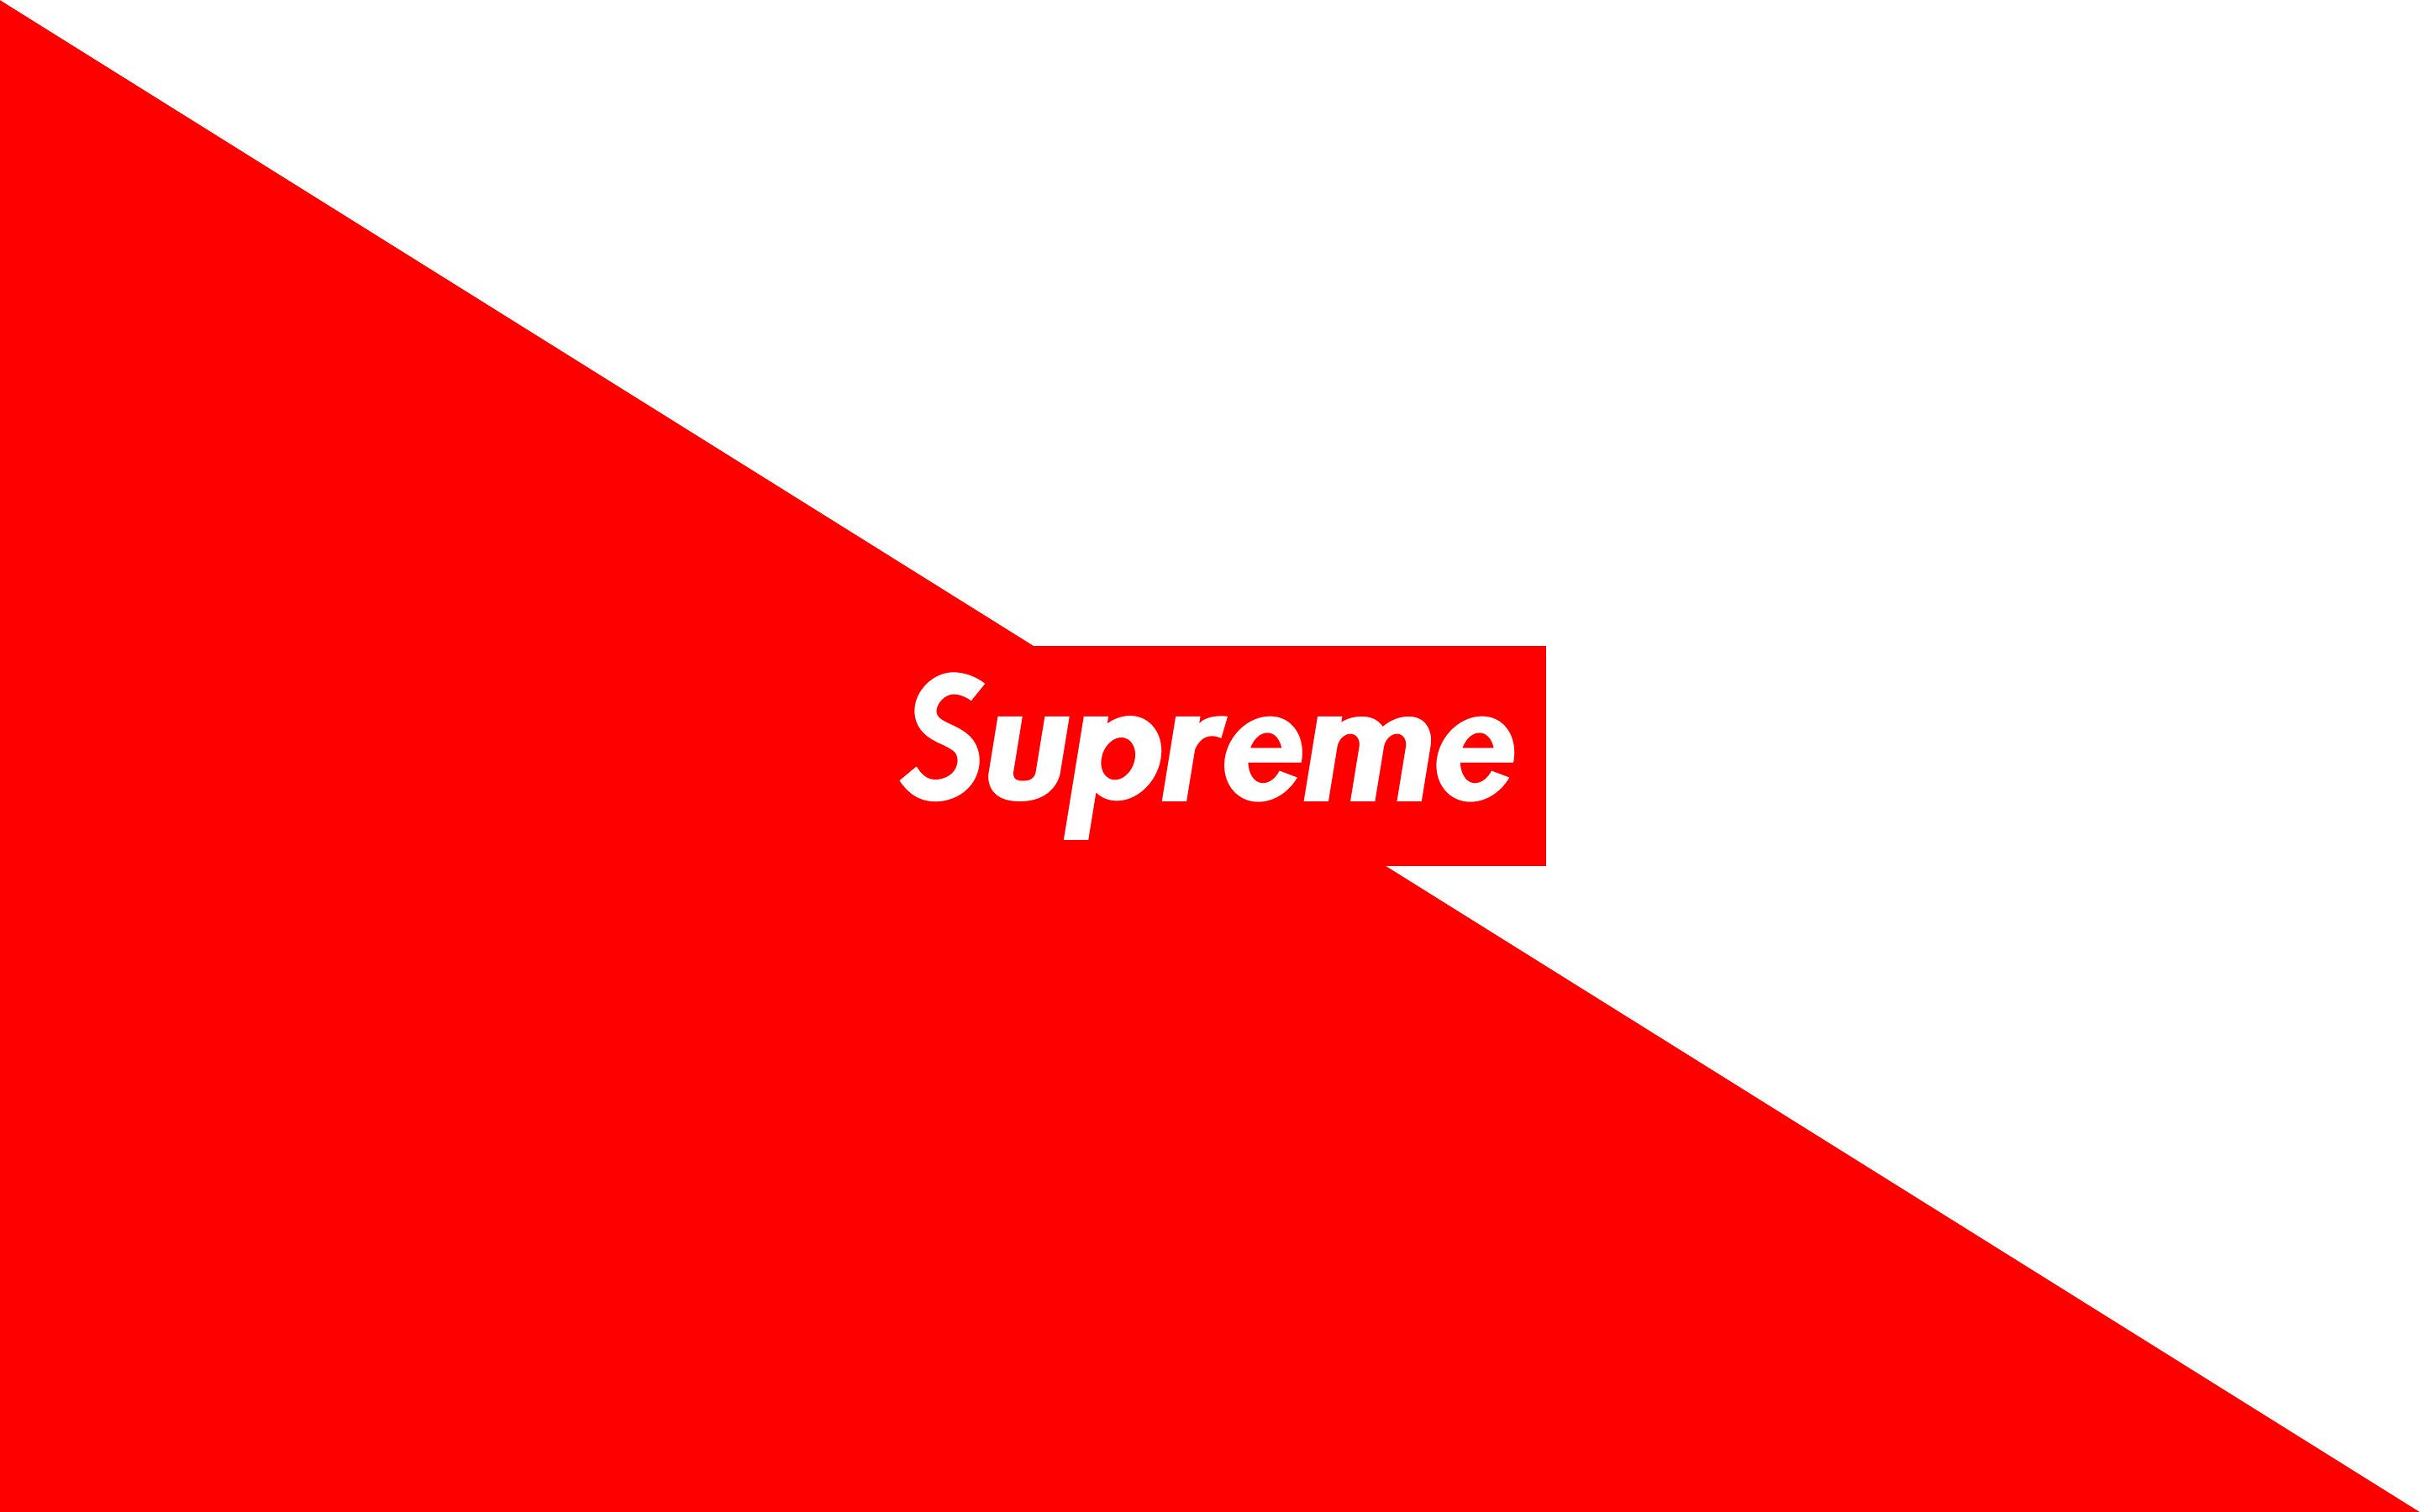 Supreme Wallpapers Top Free Supreme Backgrounds